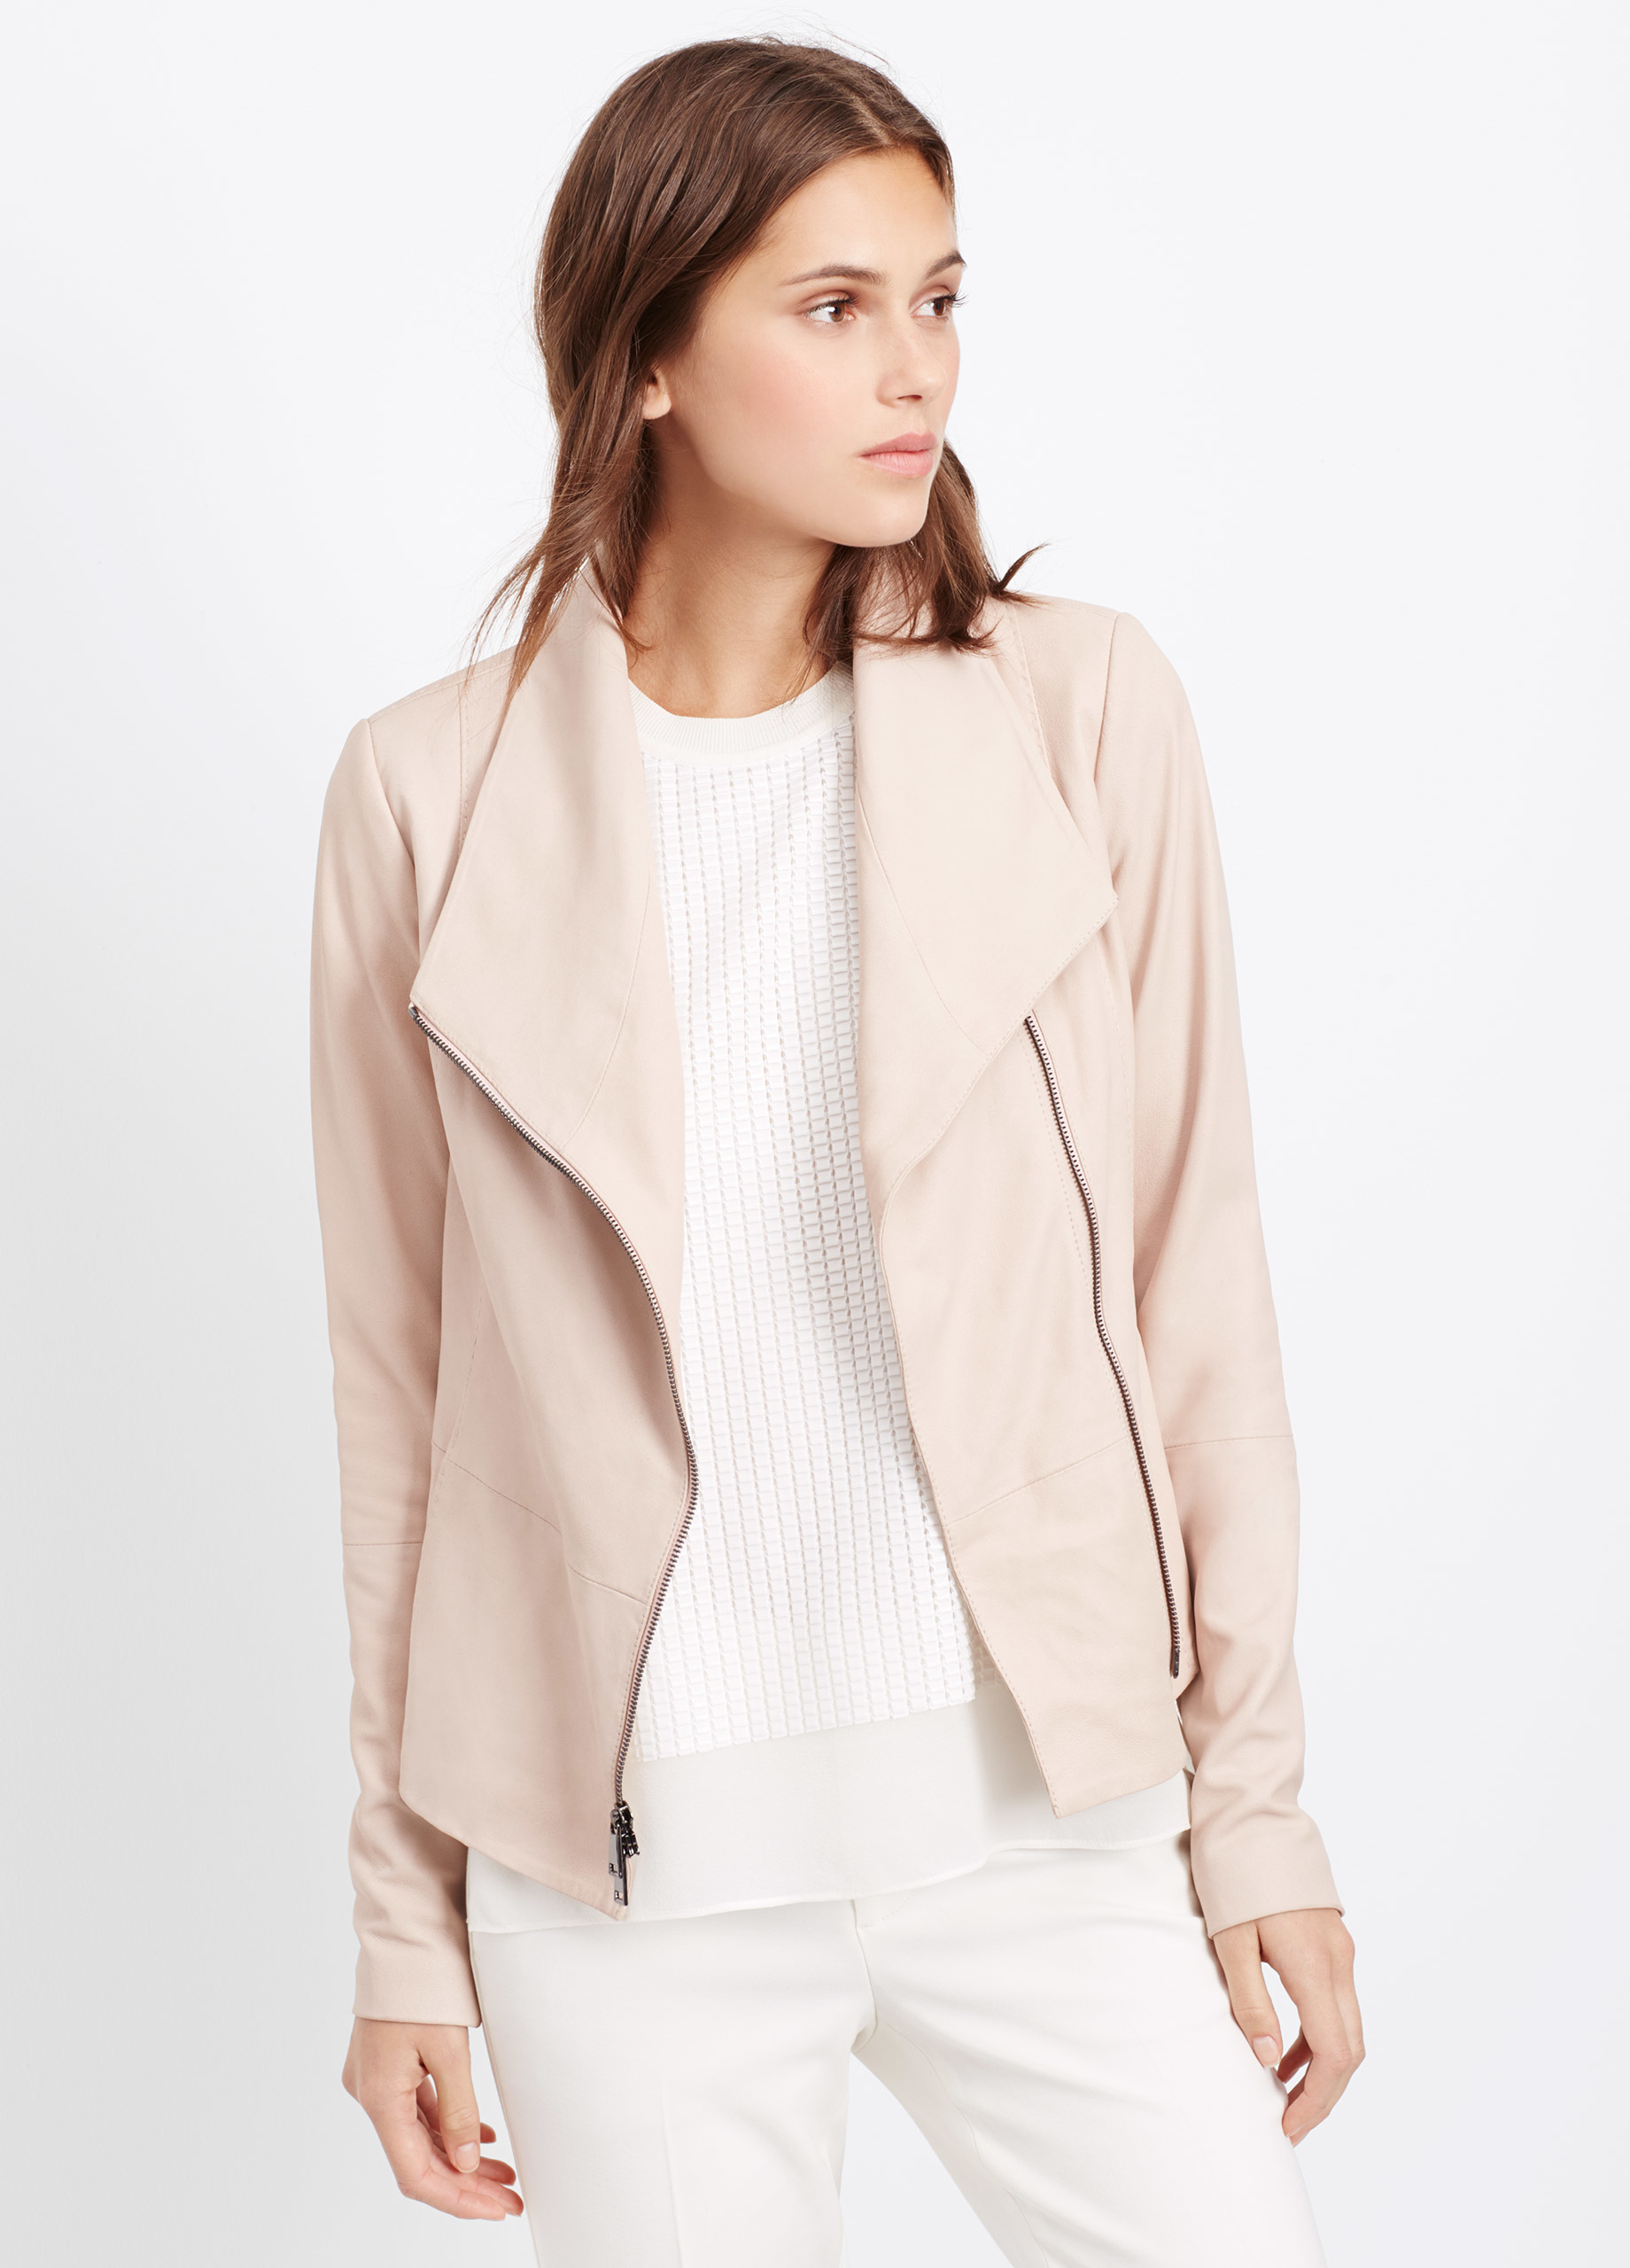 Blush Pink Leather Jacket - JacketIn